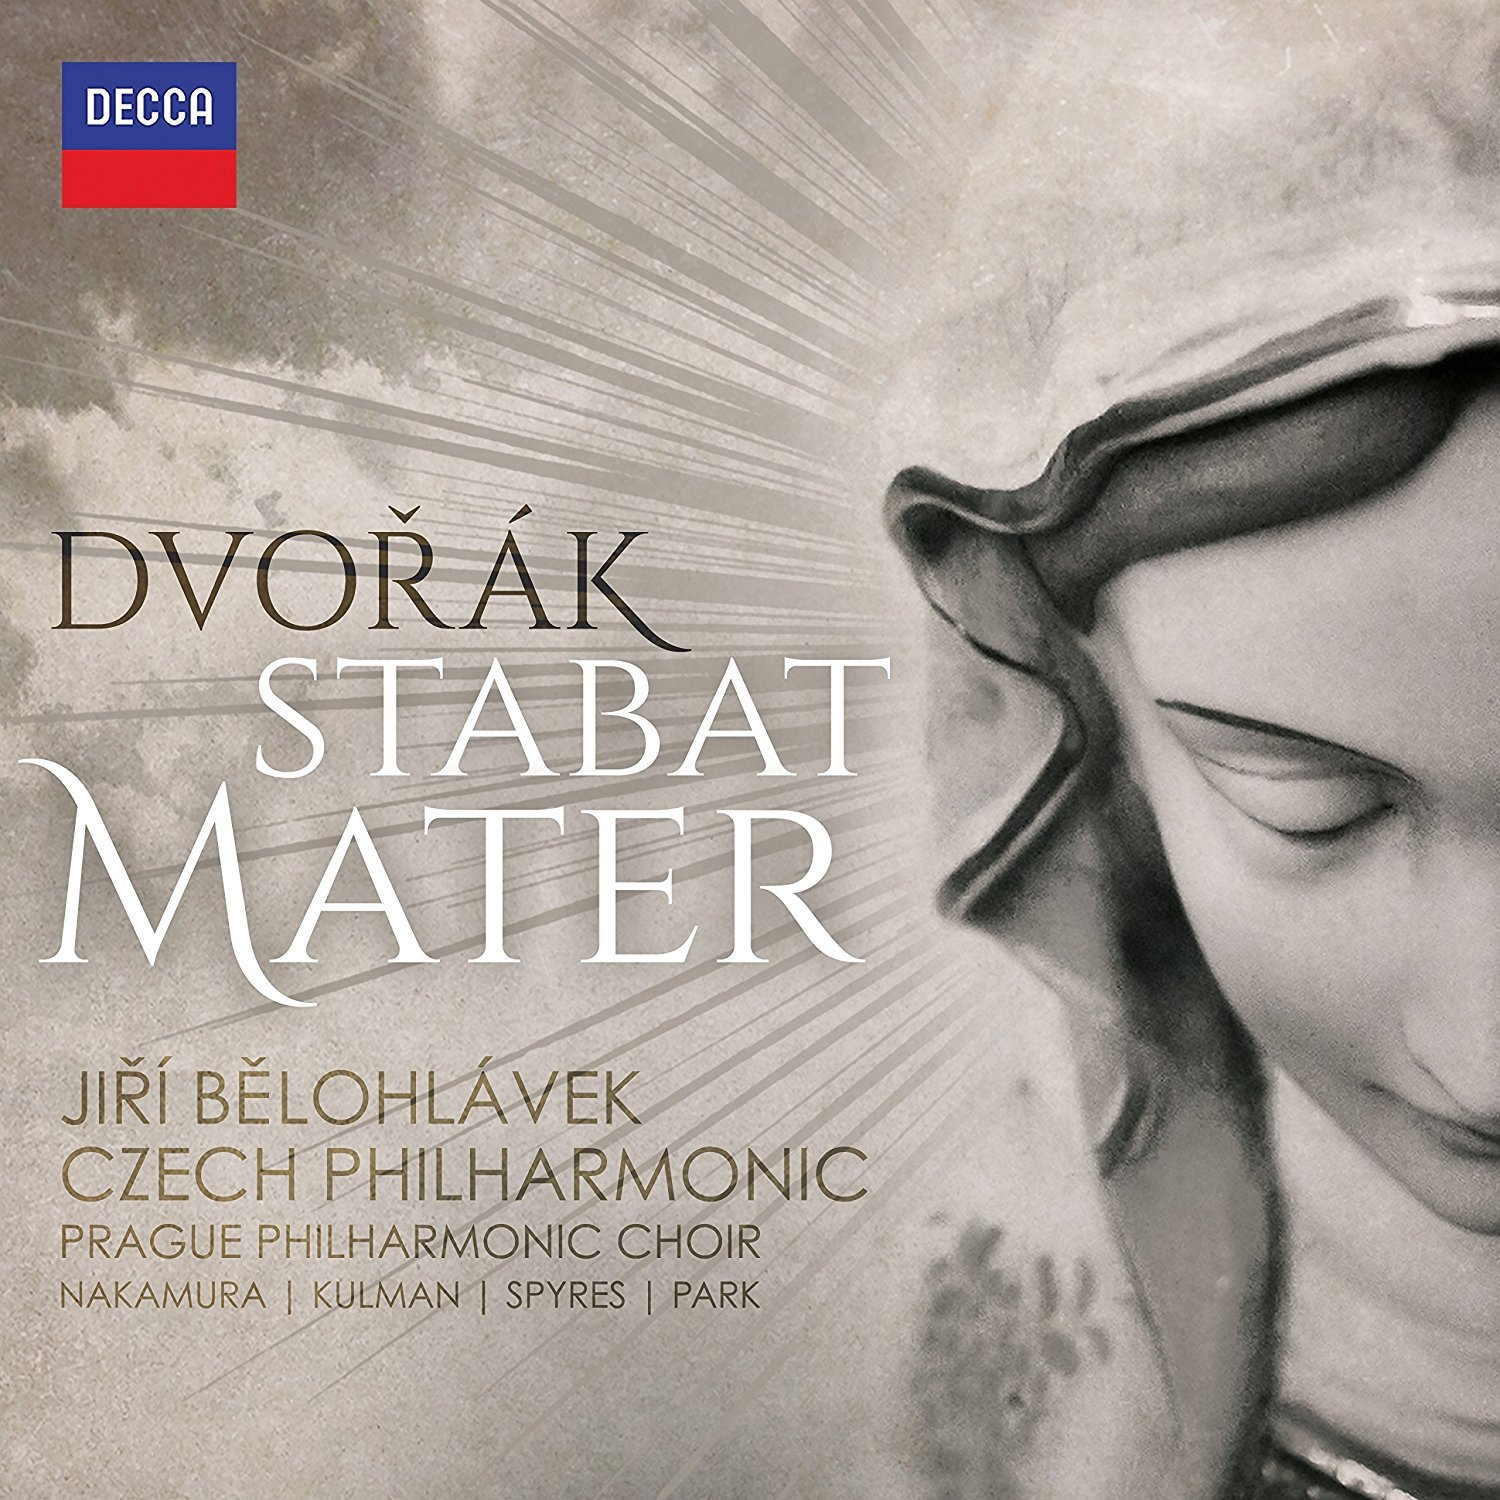 Dvorak: Stabat Mater - Jirí Belohlávek conducts th